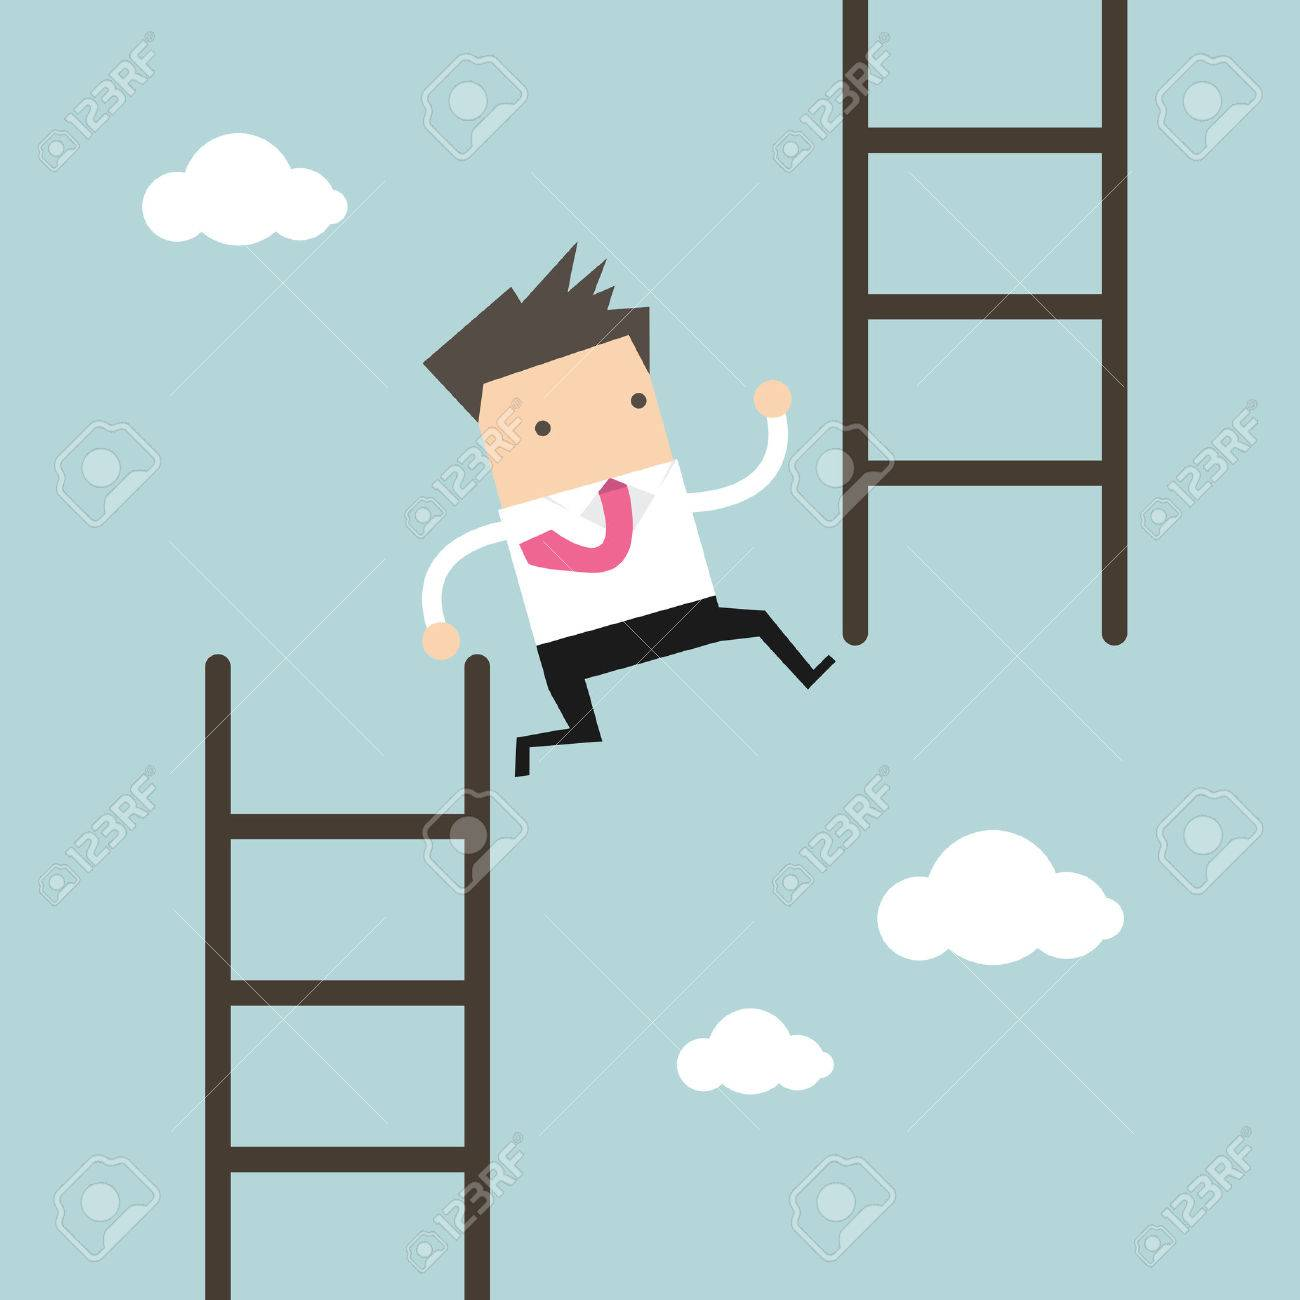 Businessman jump from low stair to high stair. vector - 60478709